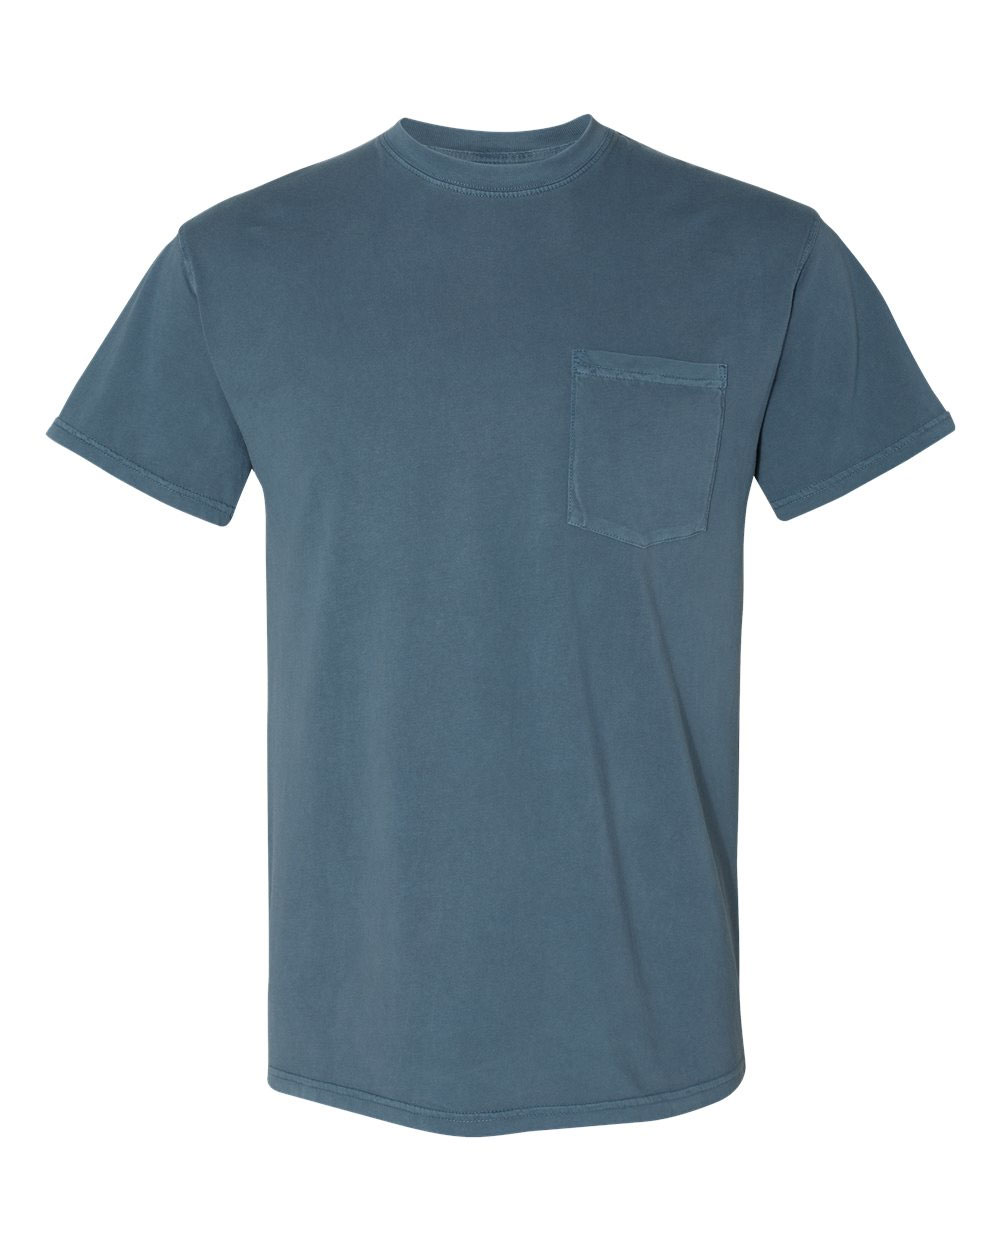 Next Level Inspired Dye Pocket Adult Crew